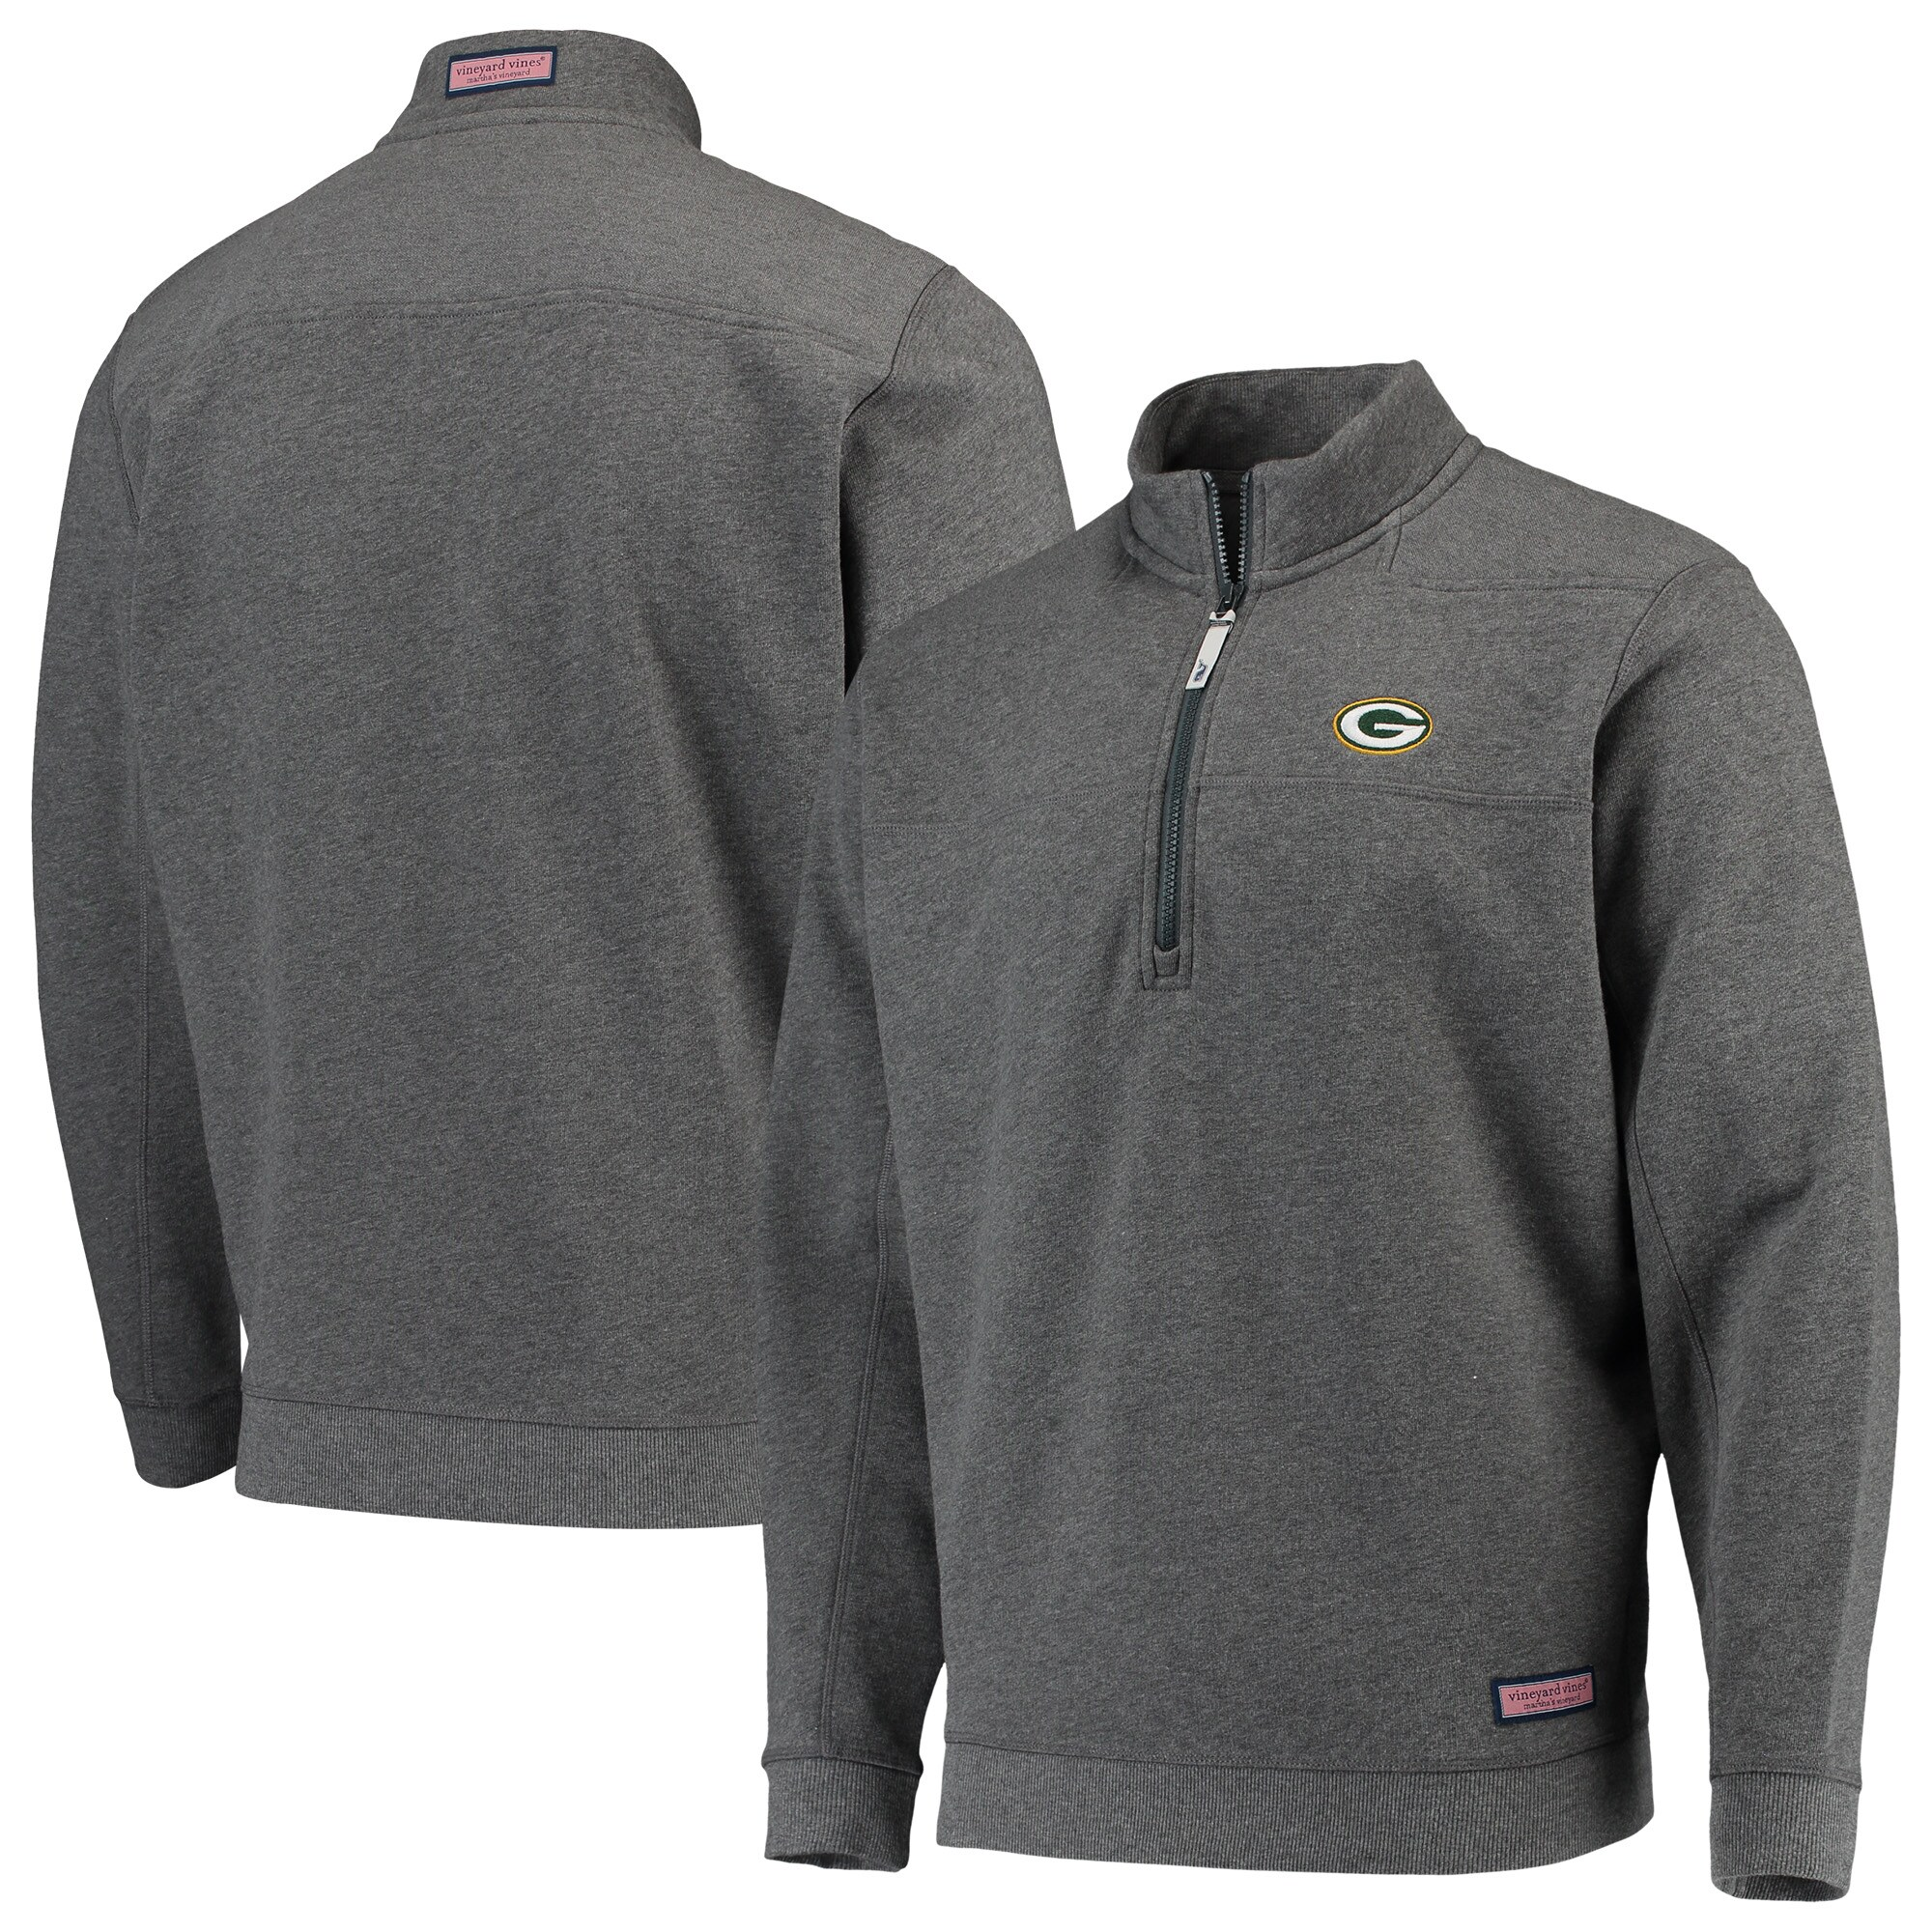 Green Bay Packers Vineyard Vines Collegiate Shep Shirt Quarter-Zip Pullover Jacket - Heather Charcoal